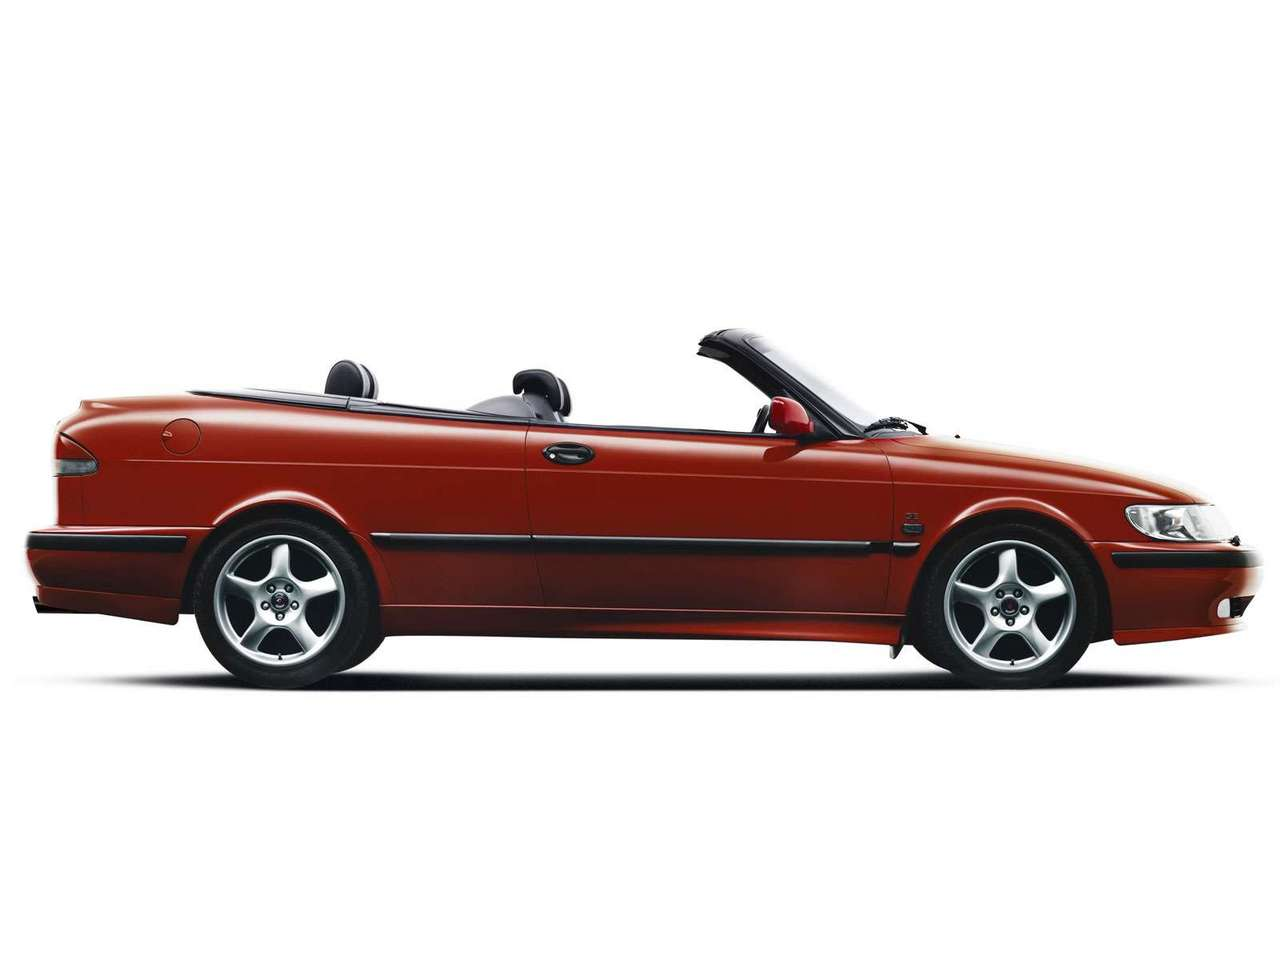 Saab 9-3 convertible, Saab 9-3 cabriolet, Saab 93, 9-3, 93, Saab, Sweden, Swedish, motoring, automotive, car, classic car, retro car, cool car, very yellow car, ebay, ebay motors, autotrader, car, cars, Volvo, GM, Vauxhall, Vauxhall Vectra